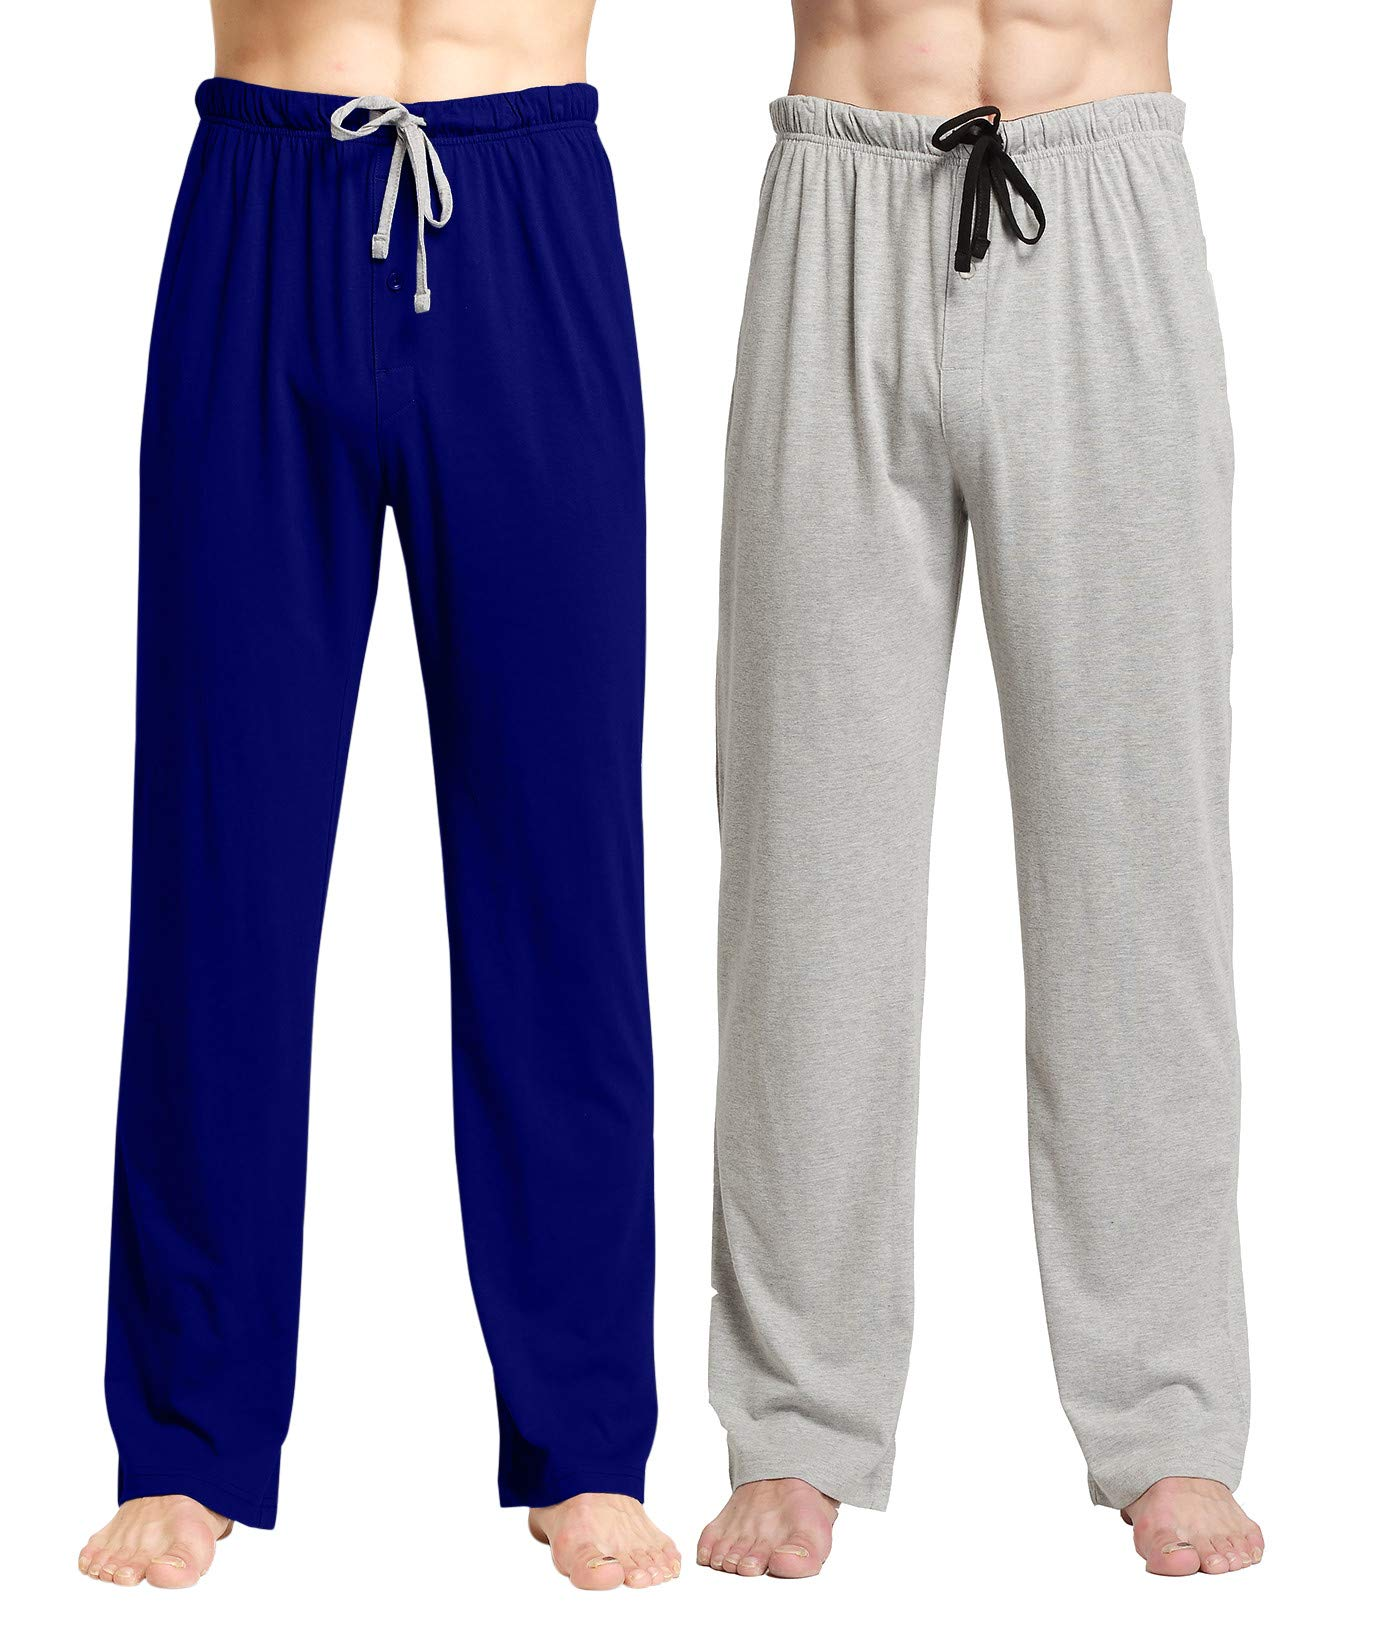 CYZ Comfortable Jersey Cotton Knit Pajama Lounge Sleep Pants-NavyGreyMelange2PK-2XL